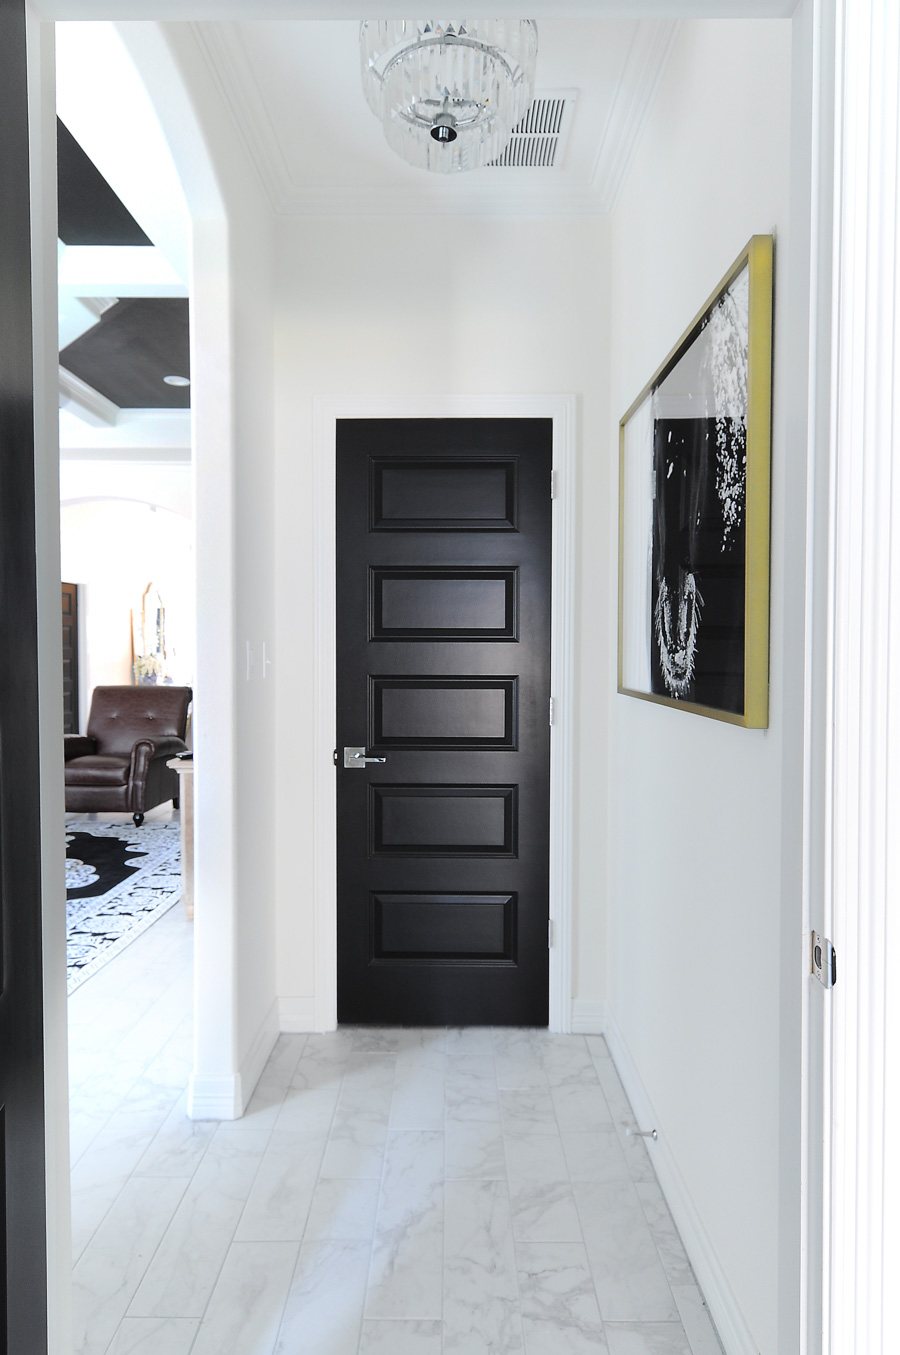 Black interior doors make a bold statement against white walls in this modern home with traditional touches.